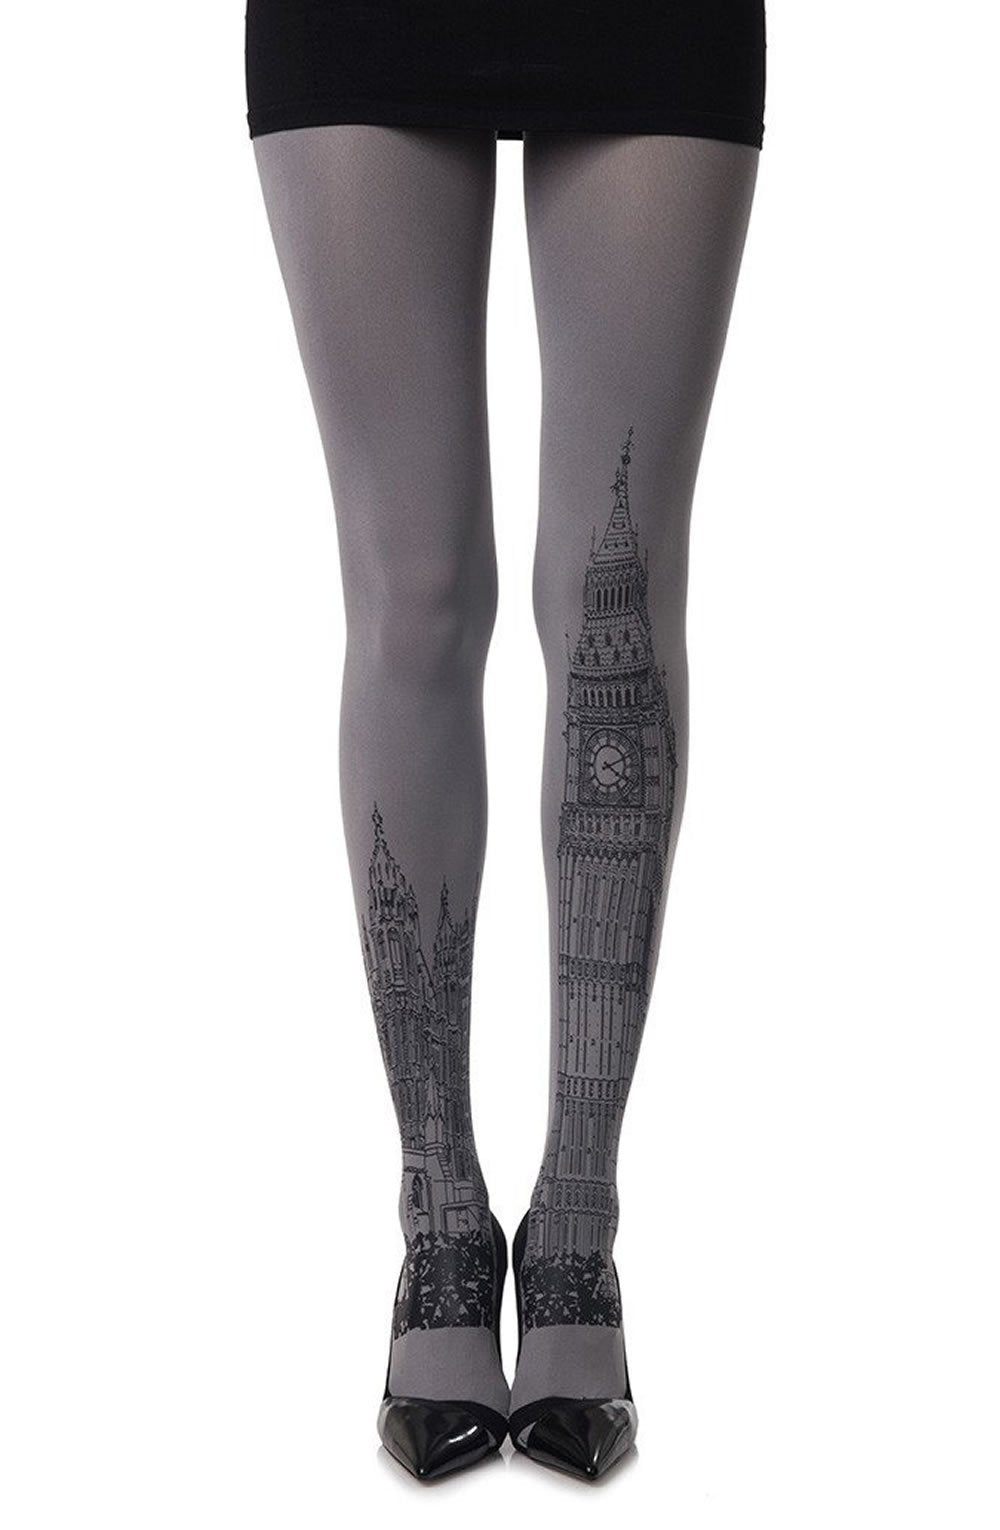 TIGHTS - GREY/BLACK - ZOHARA LONDON TIME PRINT - AvecEnvie